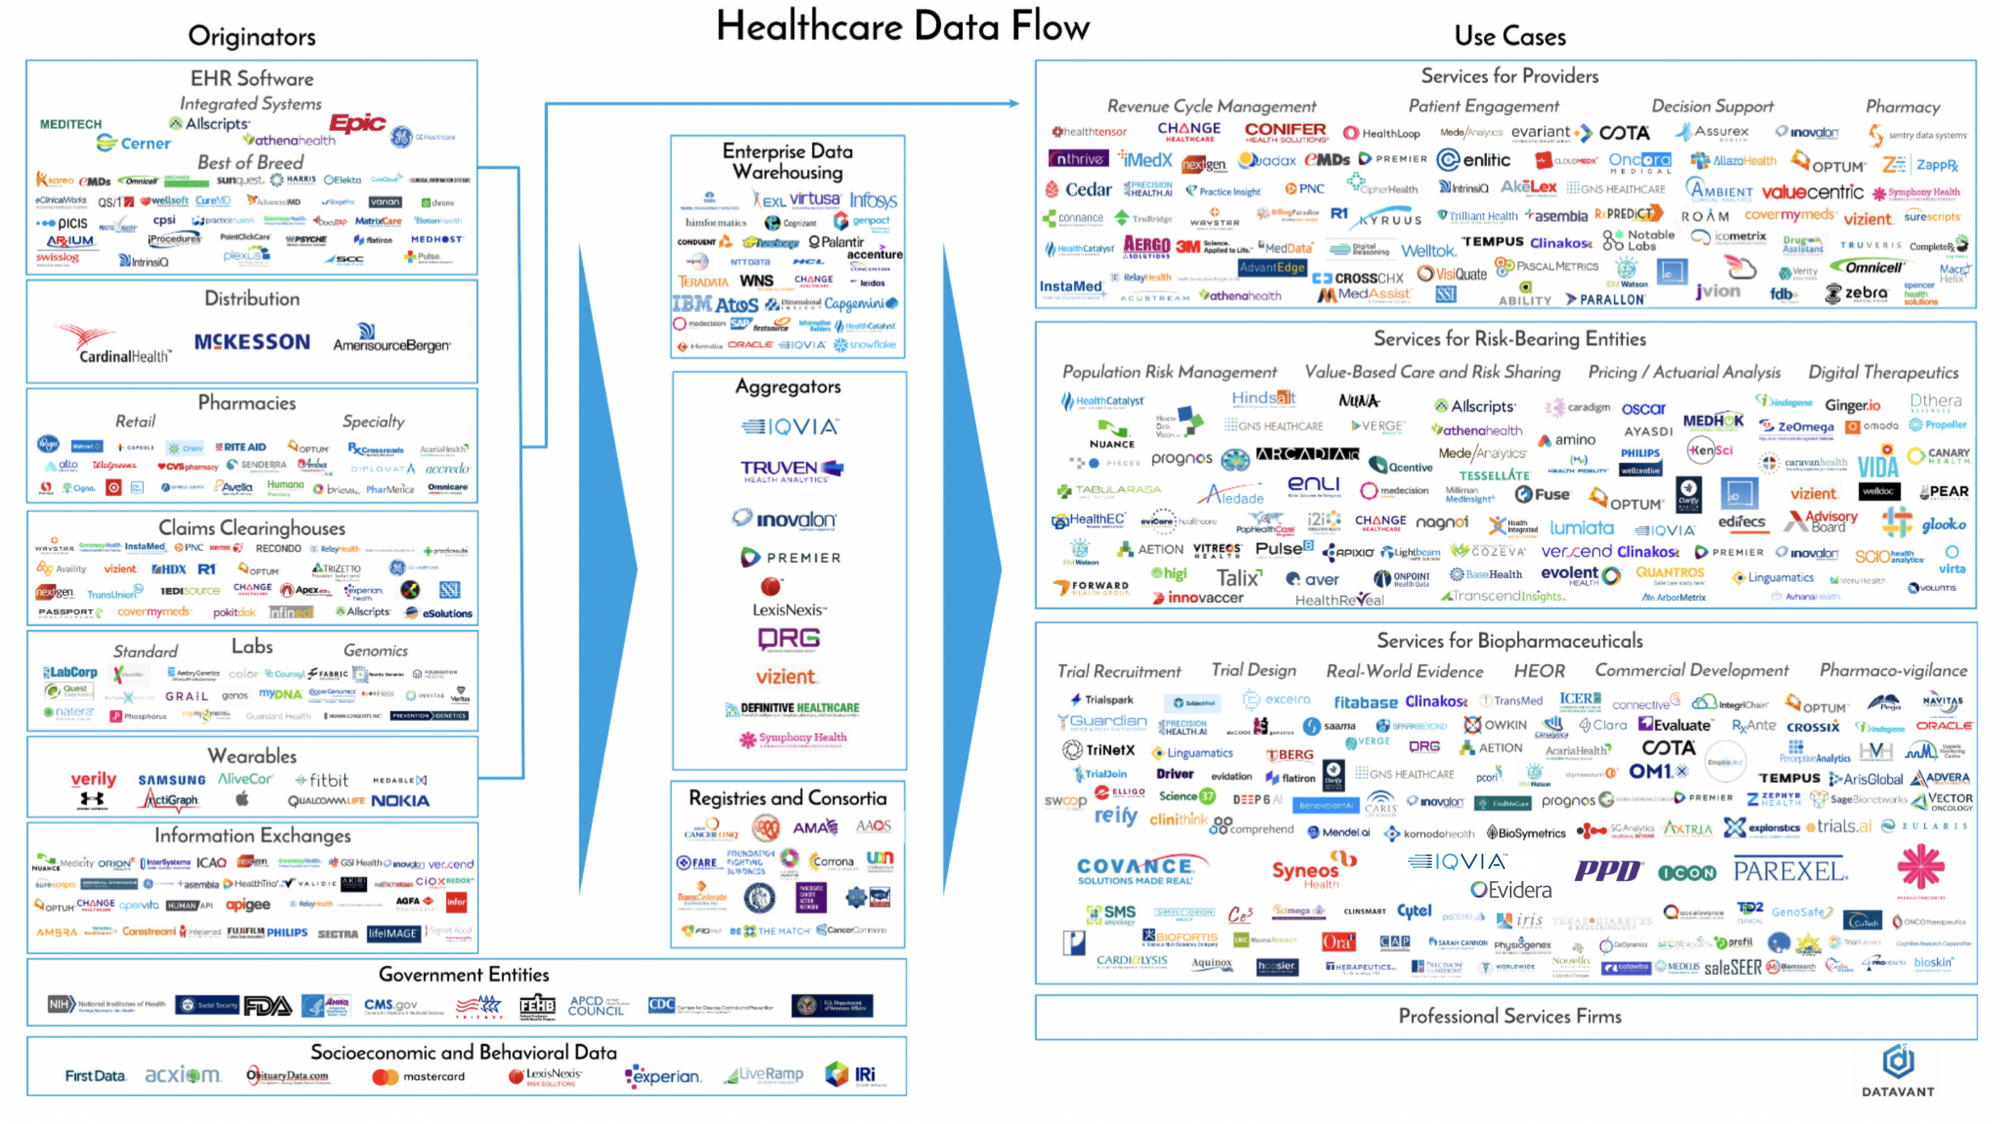 the fragmentation of health data datavant medium Integrated Project Delivery Room as we saw in jane s story systems used to generate health data are designed for operations not to anize data effectively for research or analytics